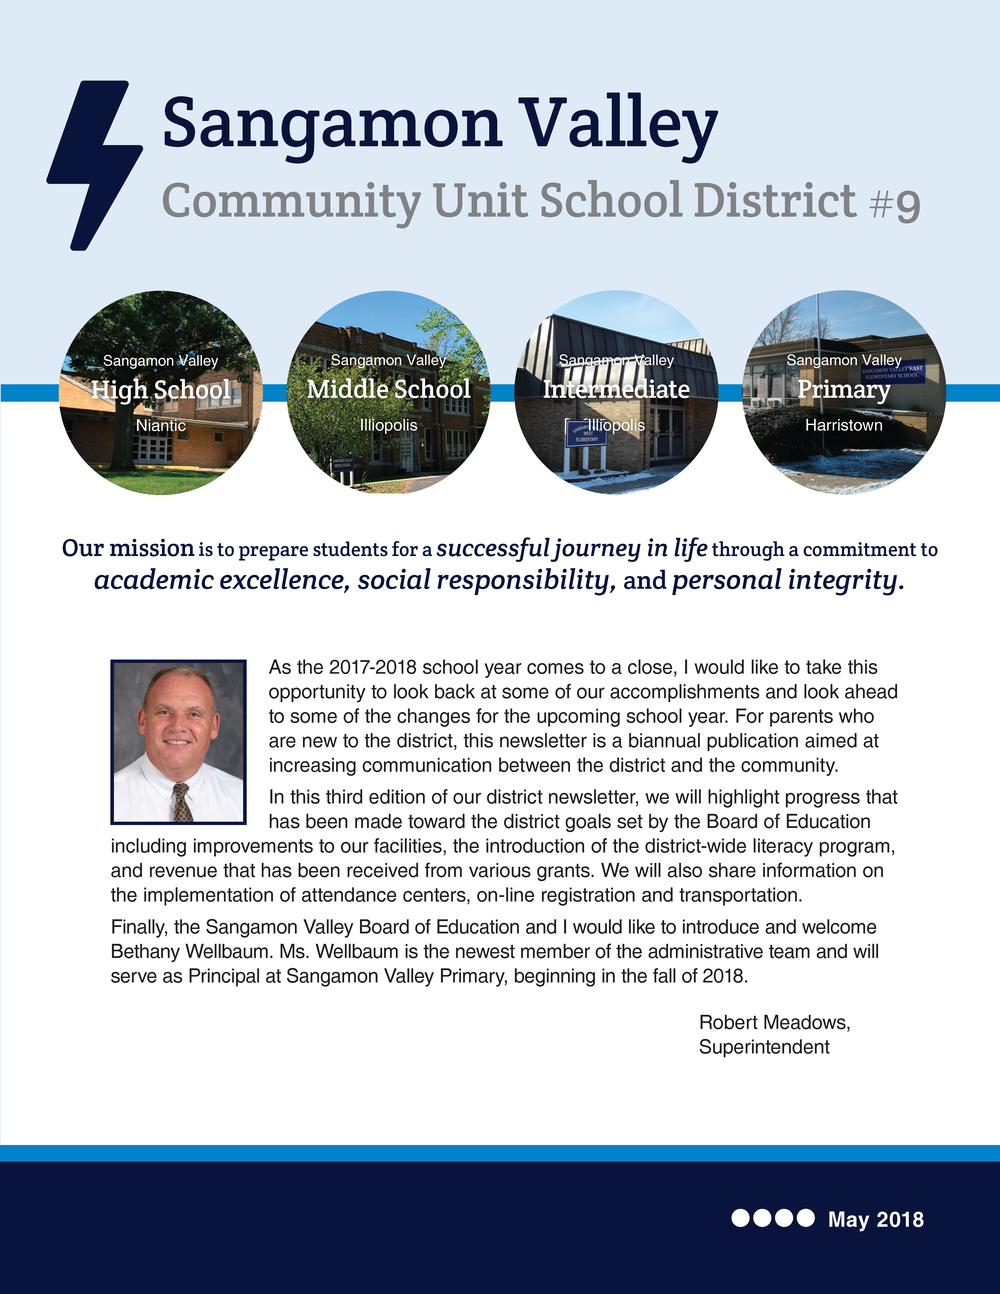 sangamon-valley-cusd9-newsletterMay18_FINAL2_Page_1.png